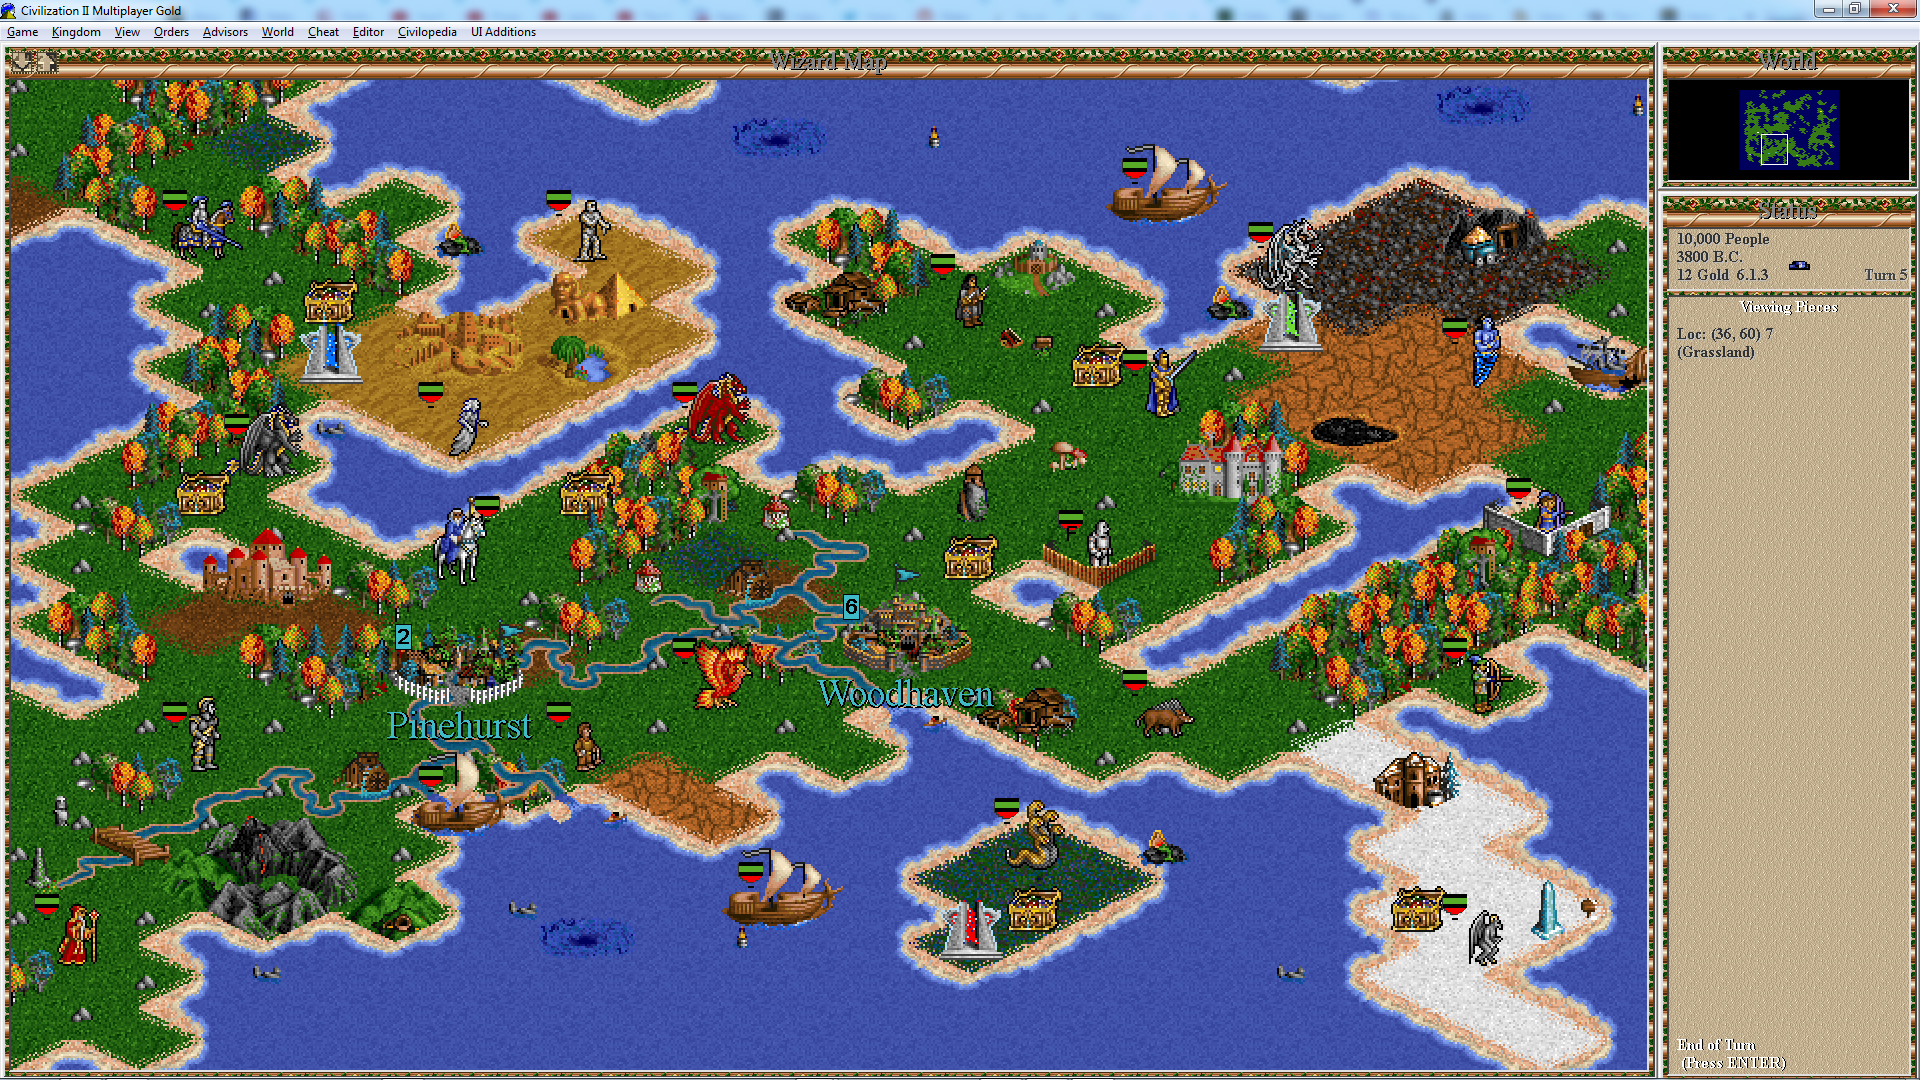 Heroes of Might & Magic 2 Civilization 2 Mod! Upload_2019-8-12_23-22-2-png